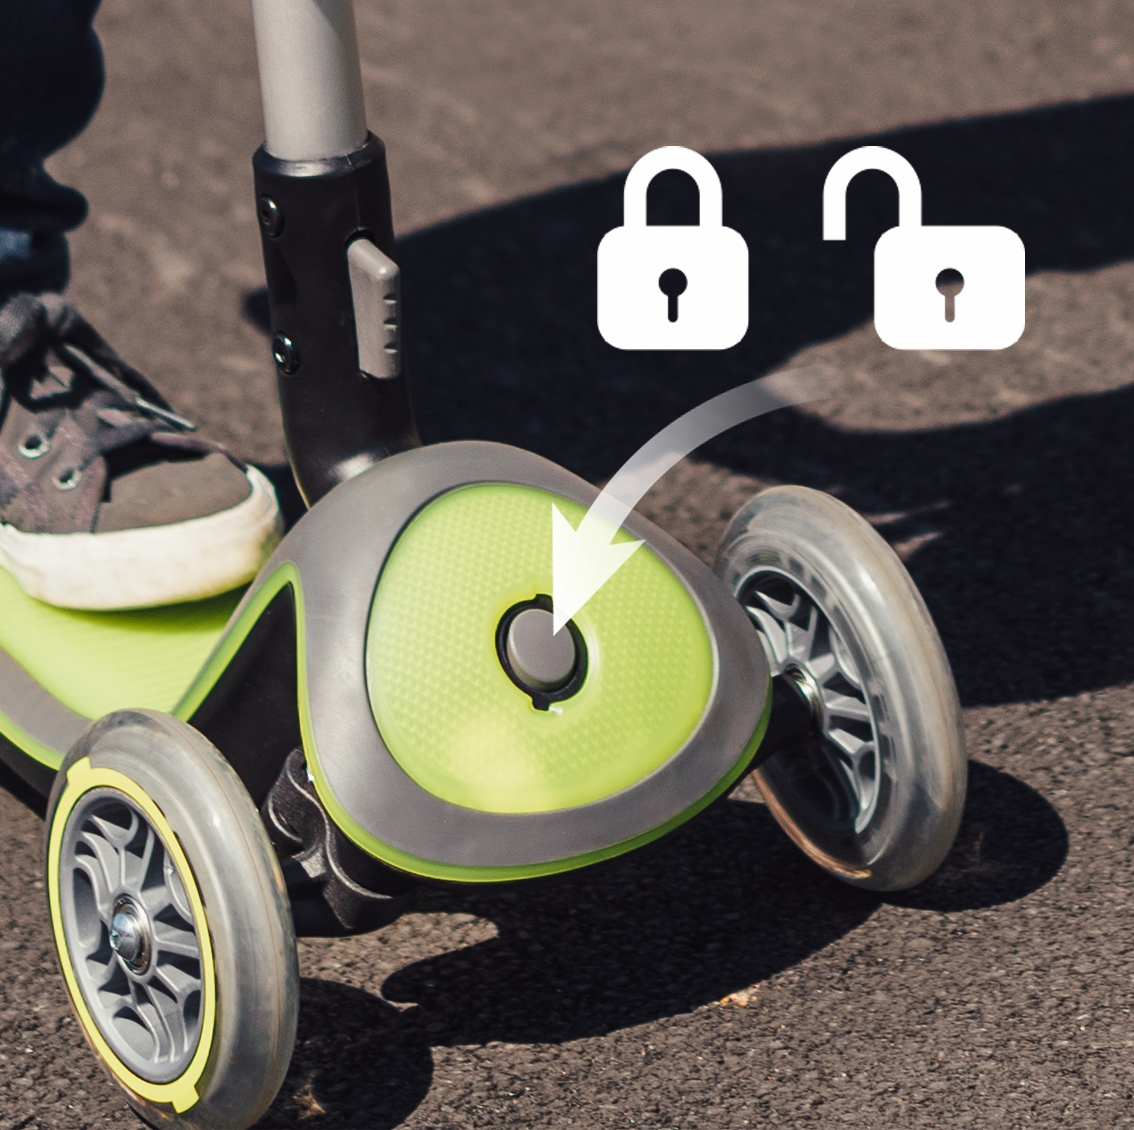 scooter for kids with patented steering lock button